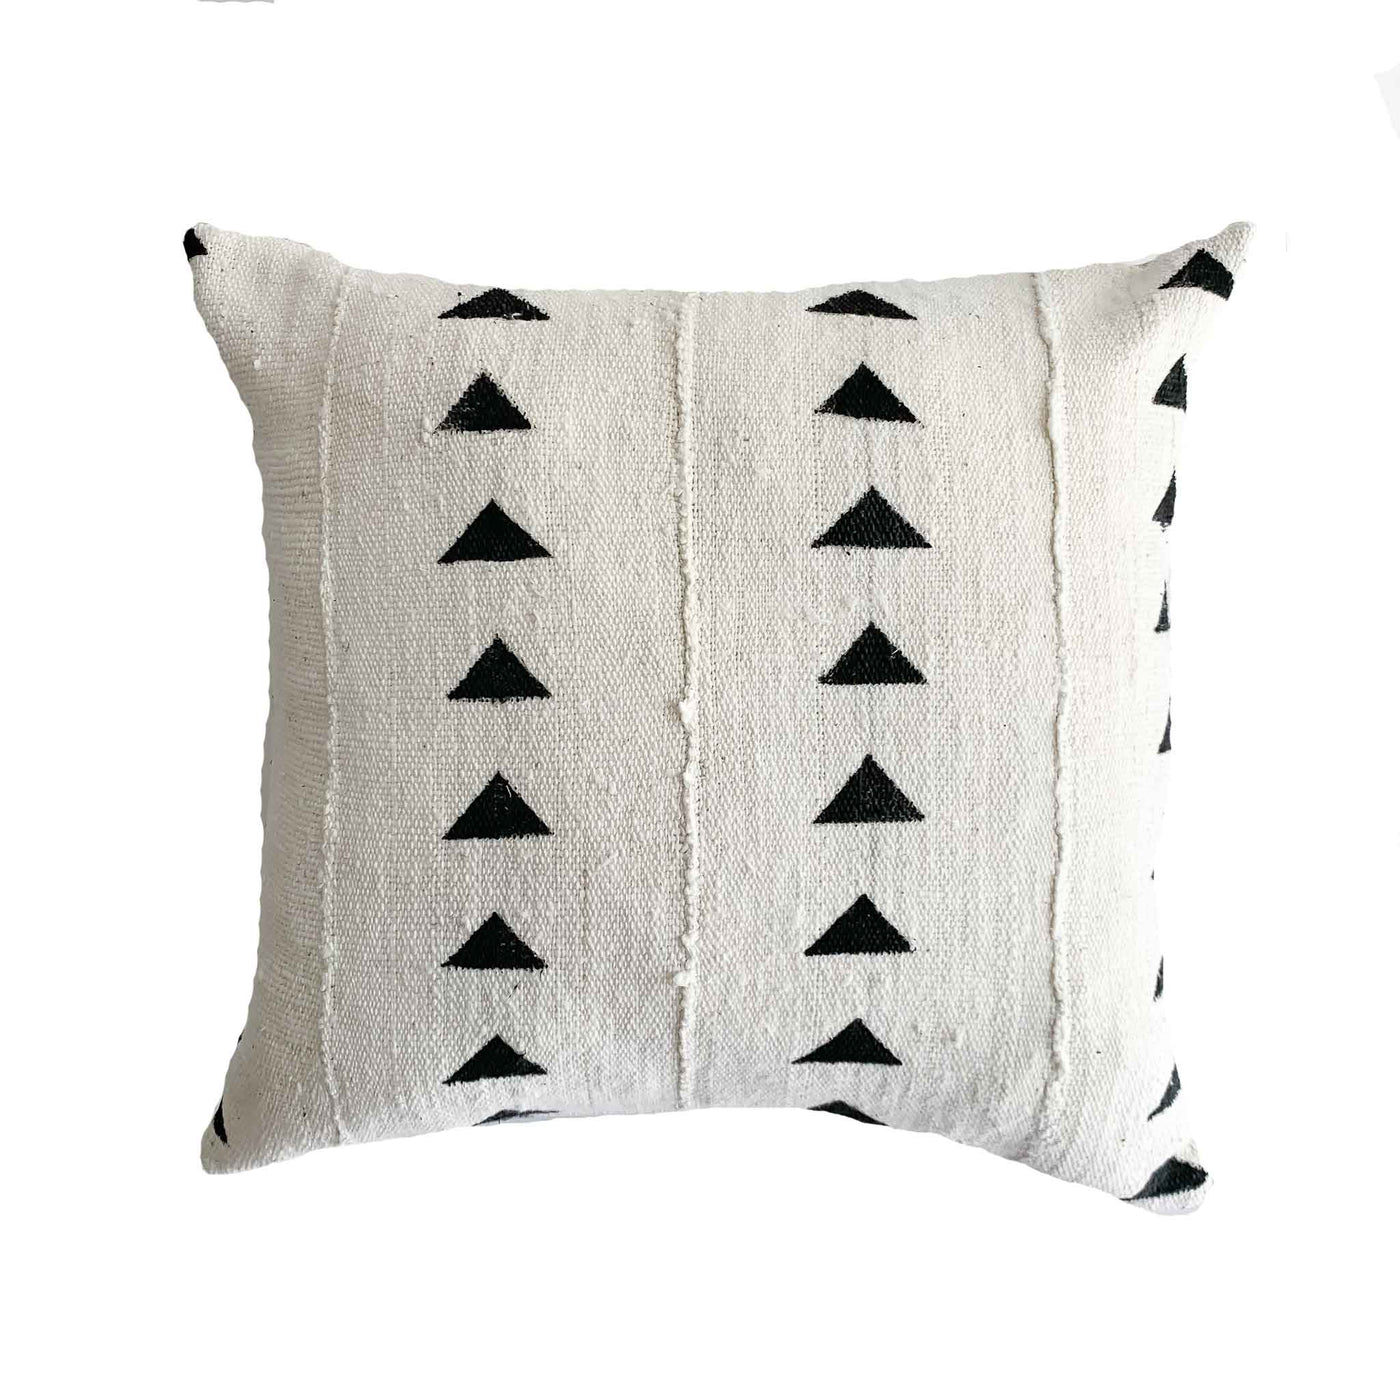 Authentic Mud Cloth | Triangle, Black and White - Studio Pillows